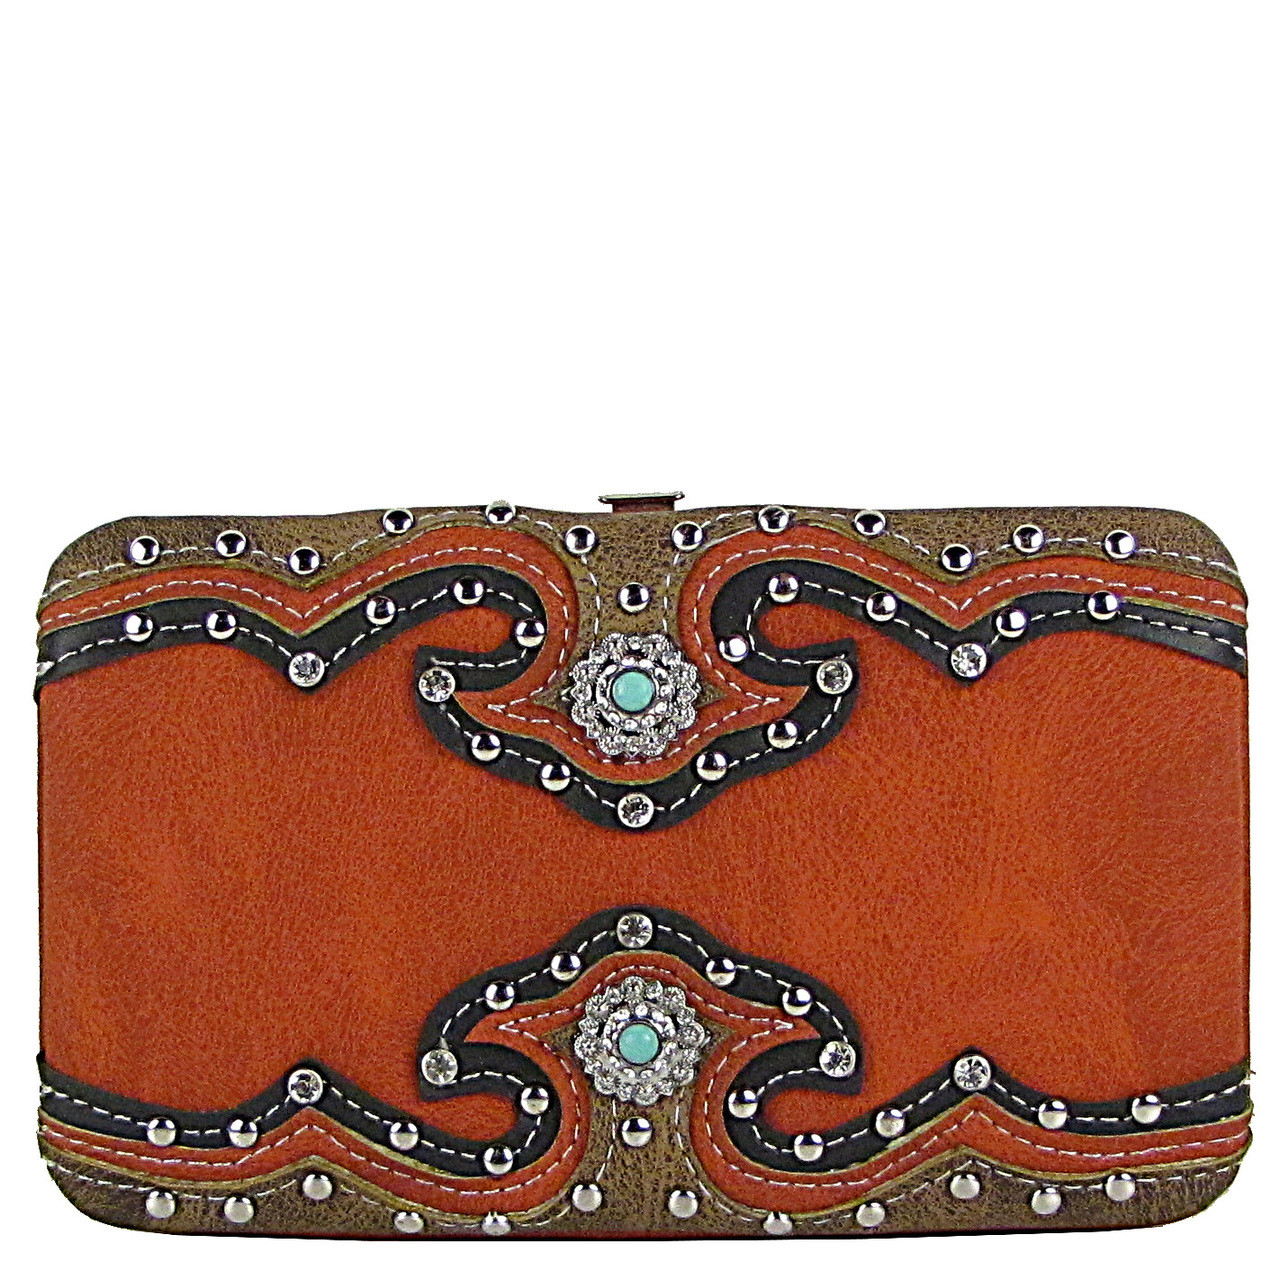 ORANGE WESTERN STUDDED EMERALD STONE LOOK FLAT THICK WALLET FW2-12111ORG